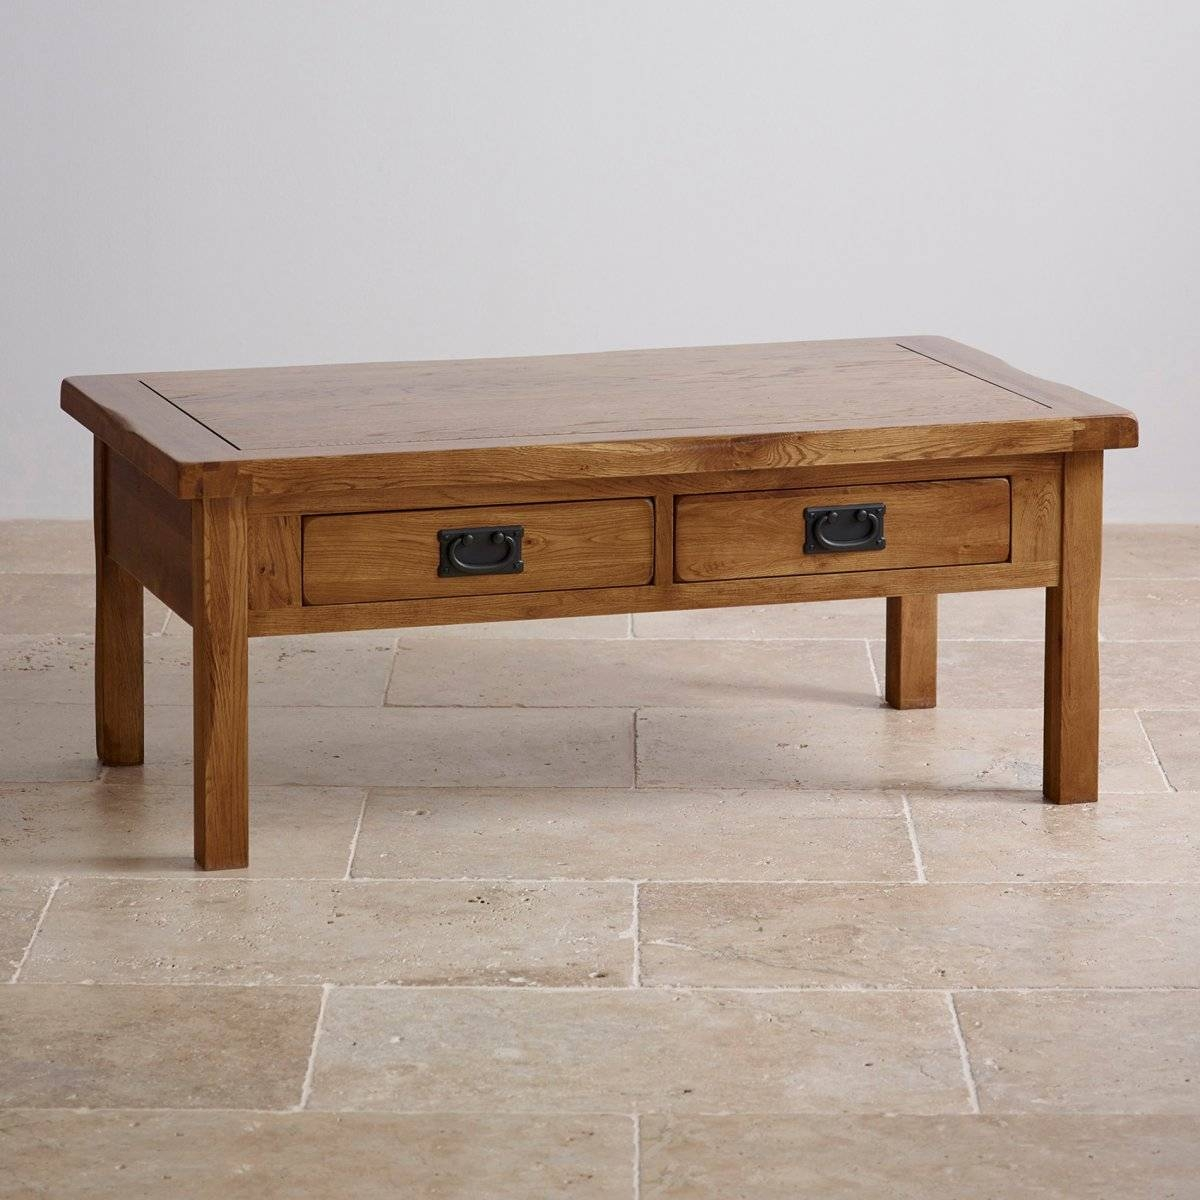 Original Rustic 4 Drawer Coffee Table In Solid Oak Pertaining To Solid Oak Coffee Table With Storage (View 11 of 15)